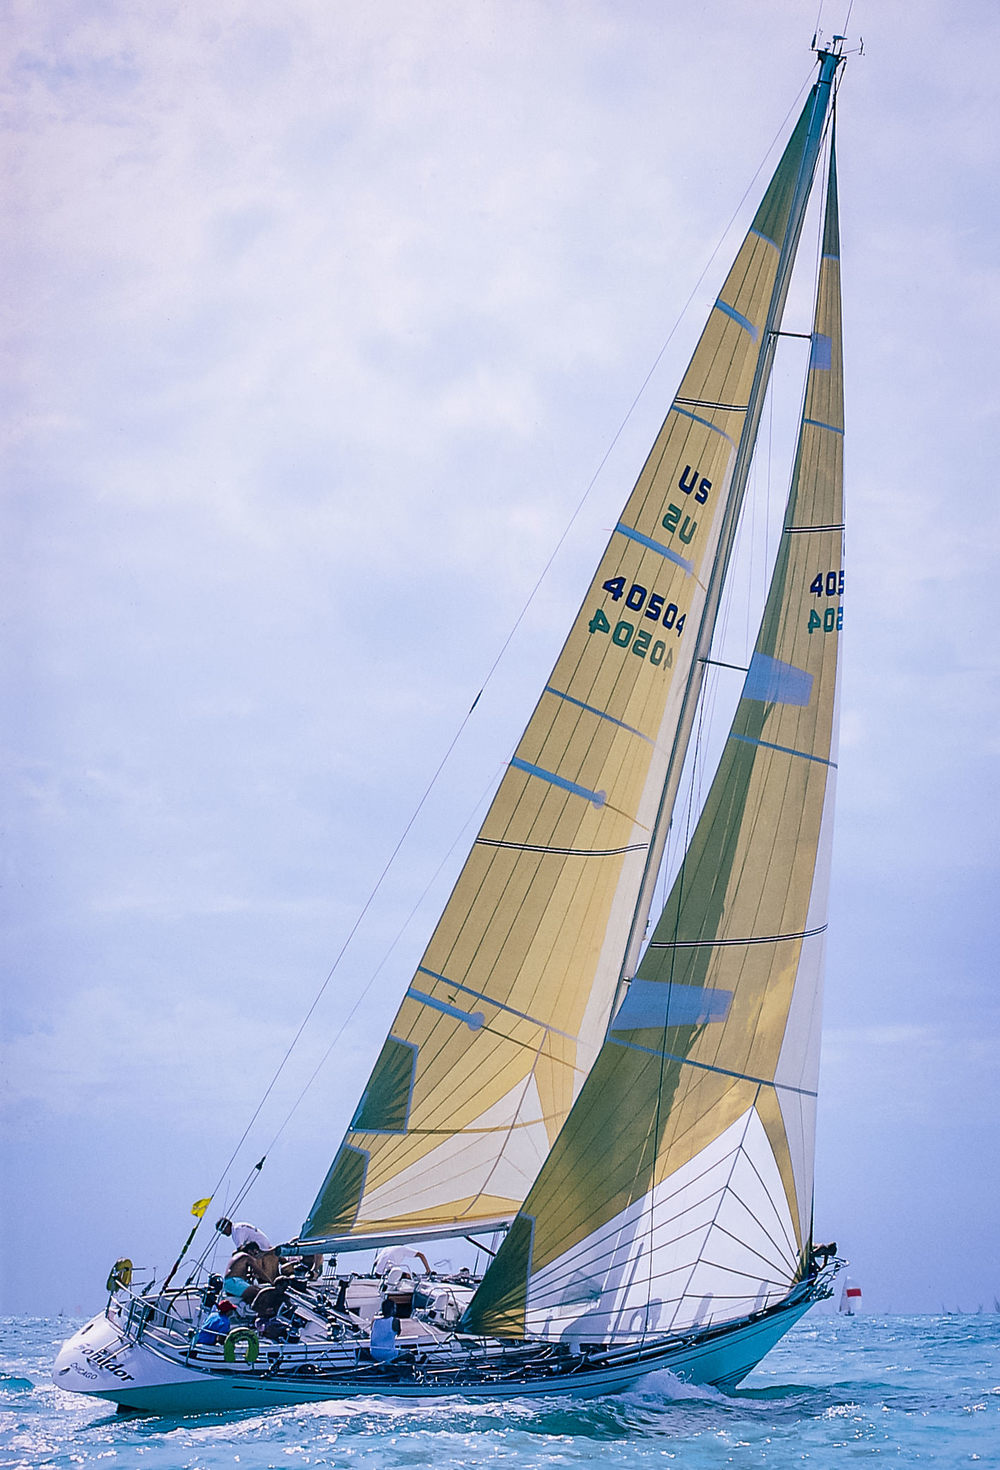 UK Sailmakers Racing Mainsails Radial Sonador.jpg